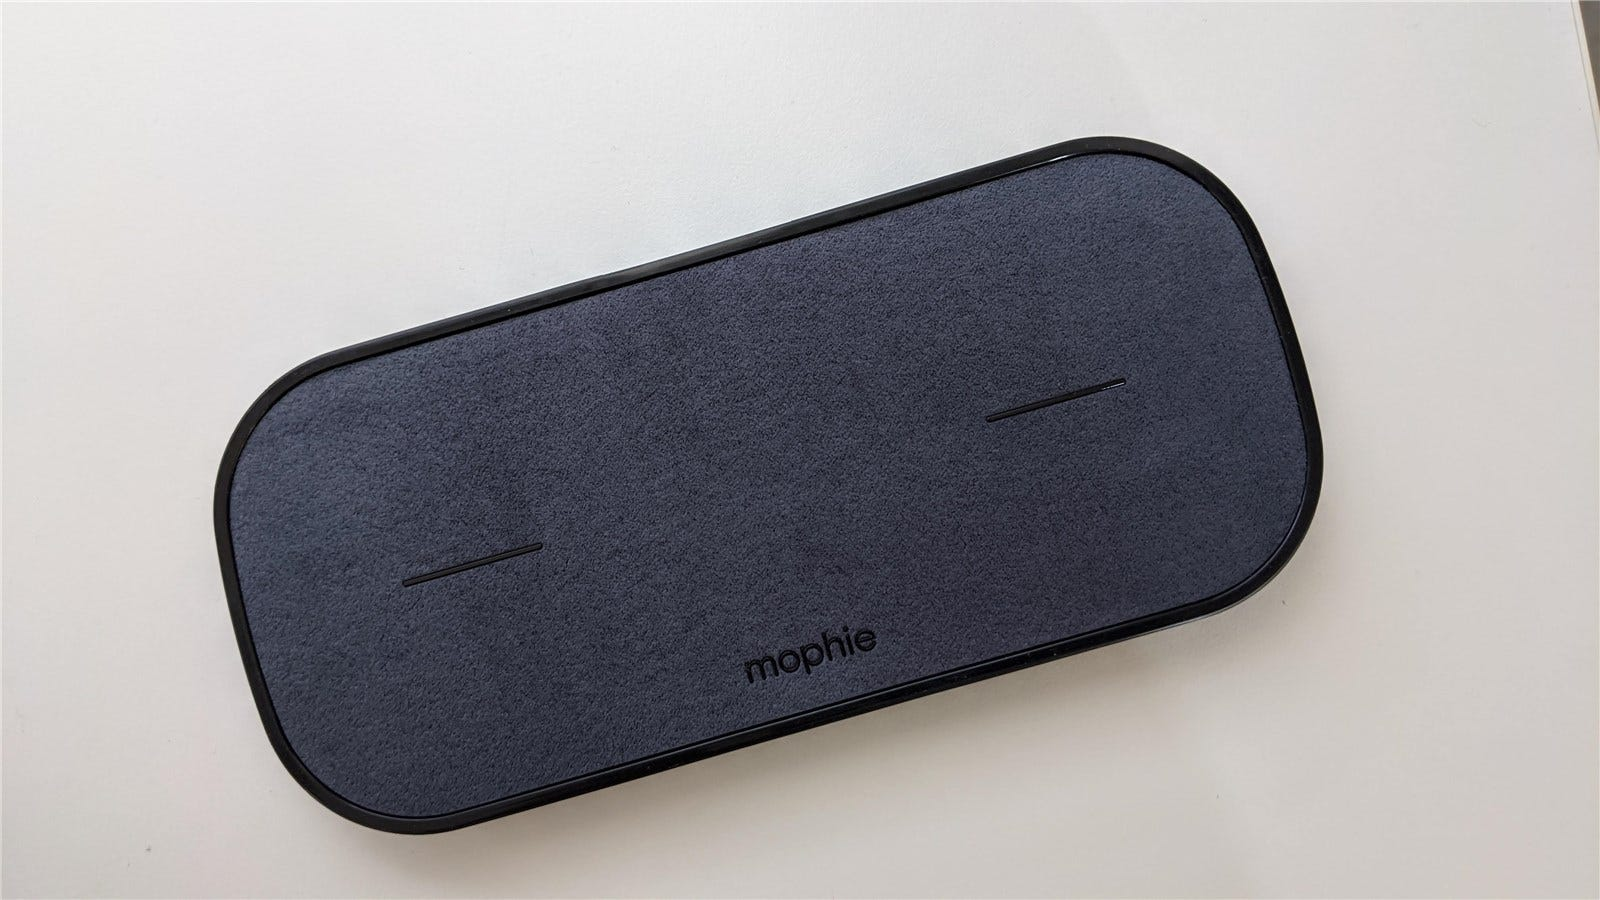 The Mophie Dual Wireless Charging Pad